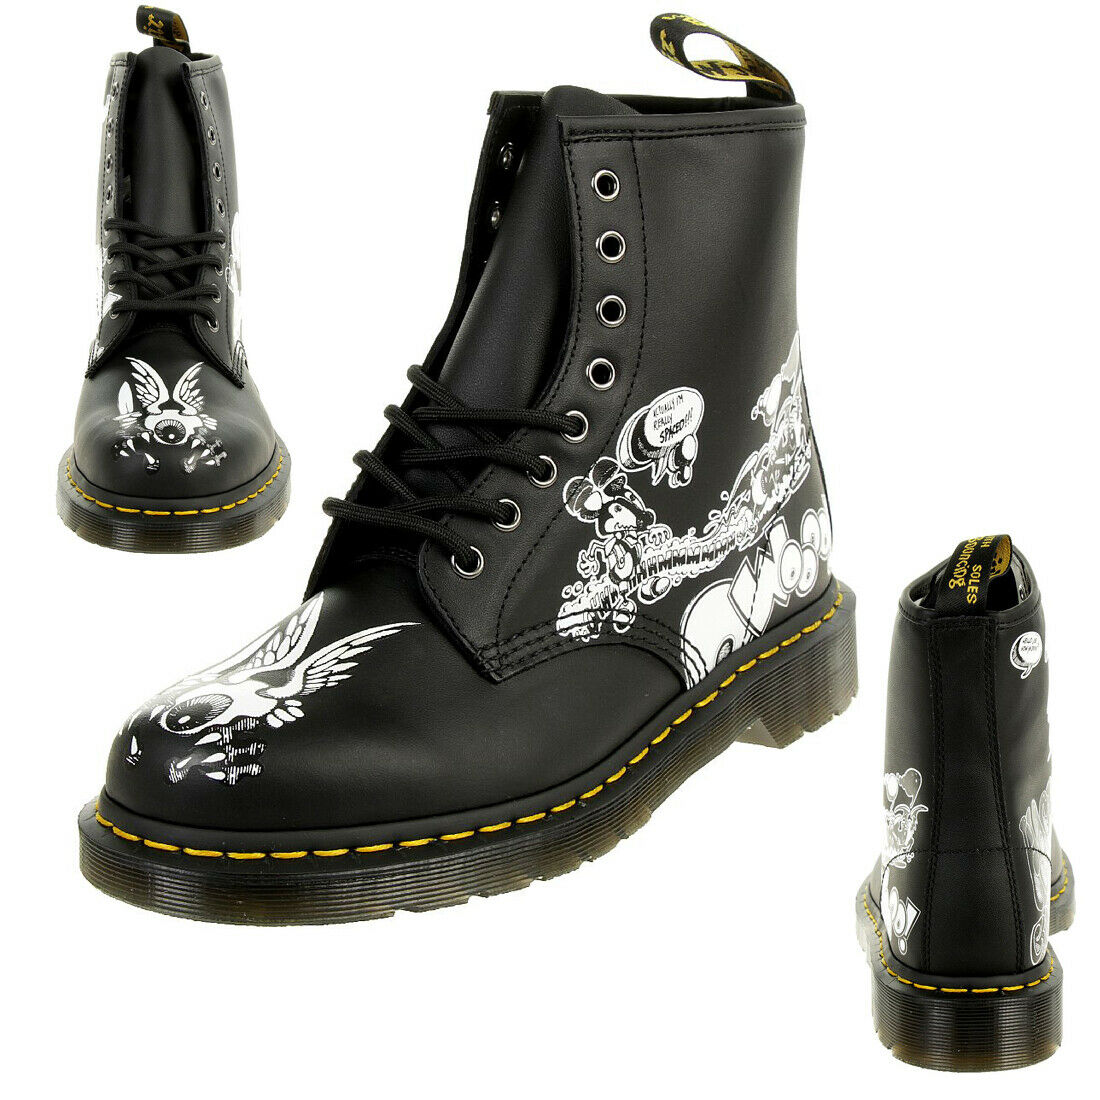 Dr.Martens 1460 RG Eye BW Backhand Black White Unisex Stiefel Boots Rick Griffin